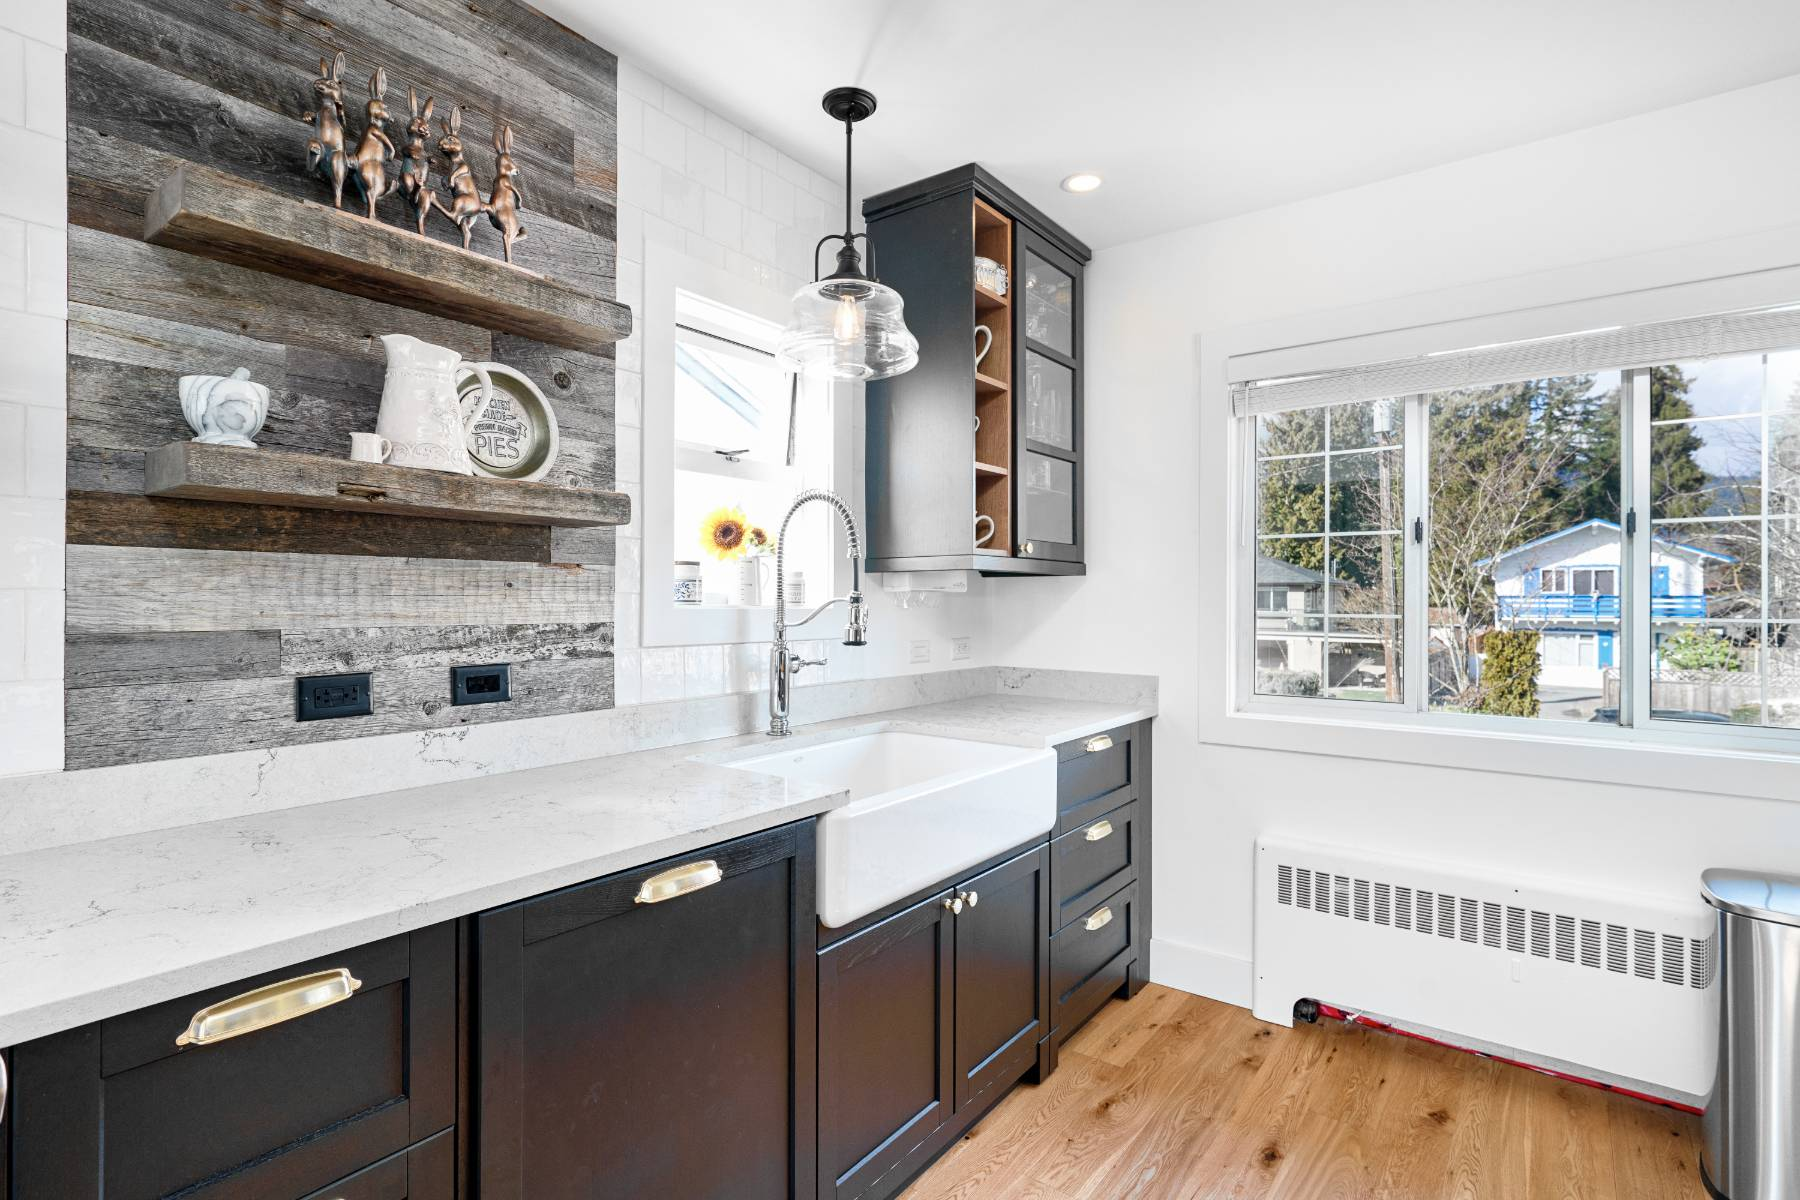 How a home renovation boosts your home's value